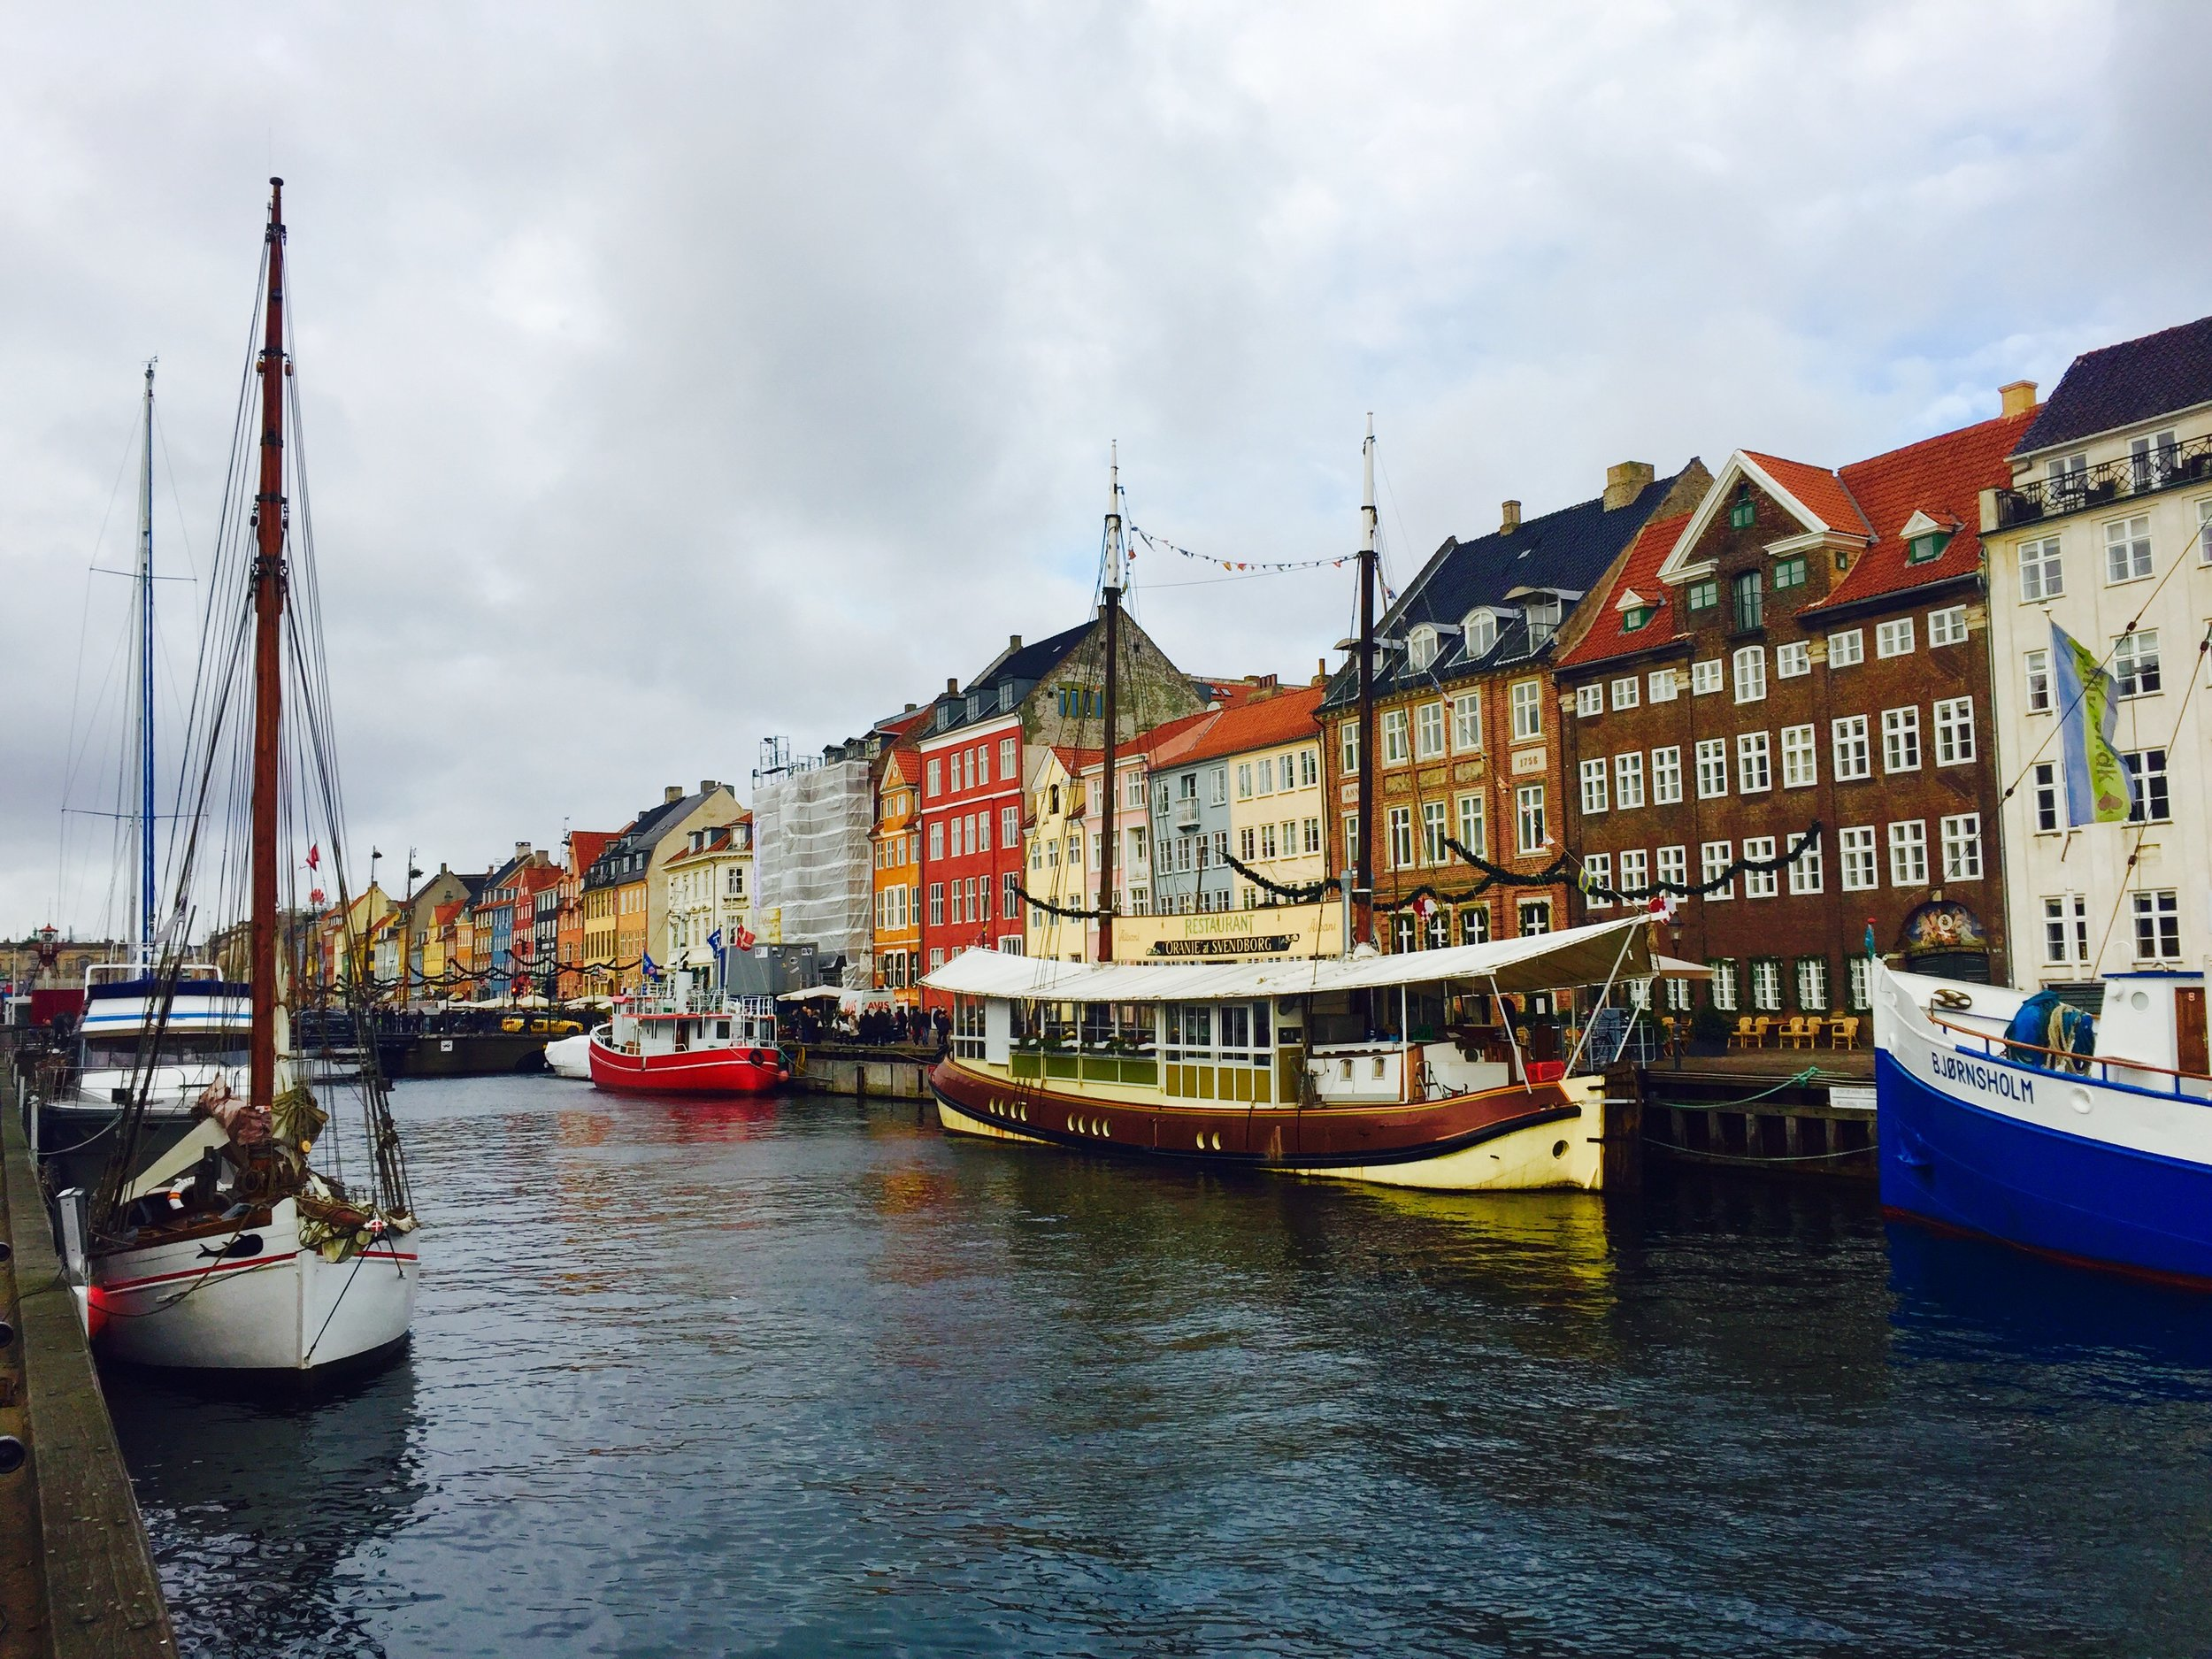 NYHAVN,a 17th-century waterfront canal